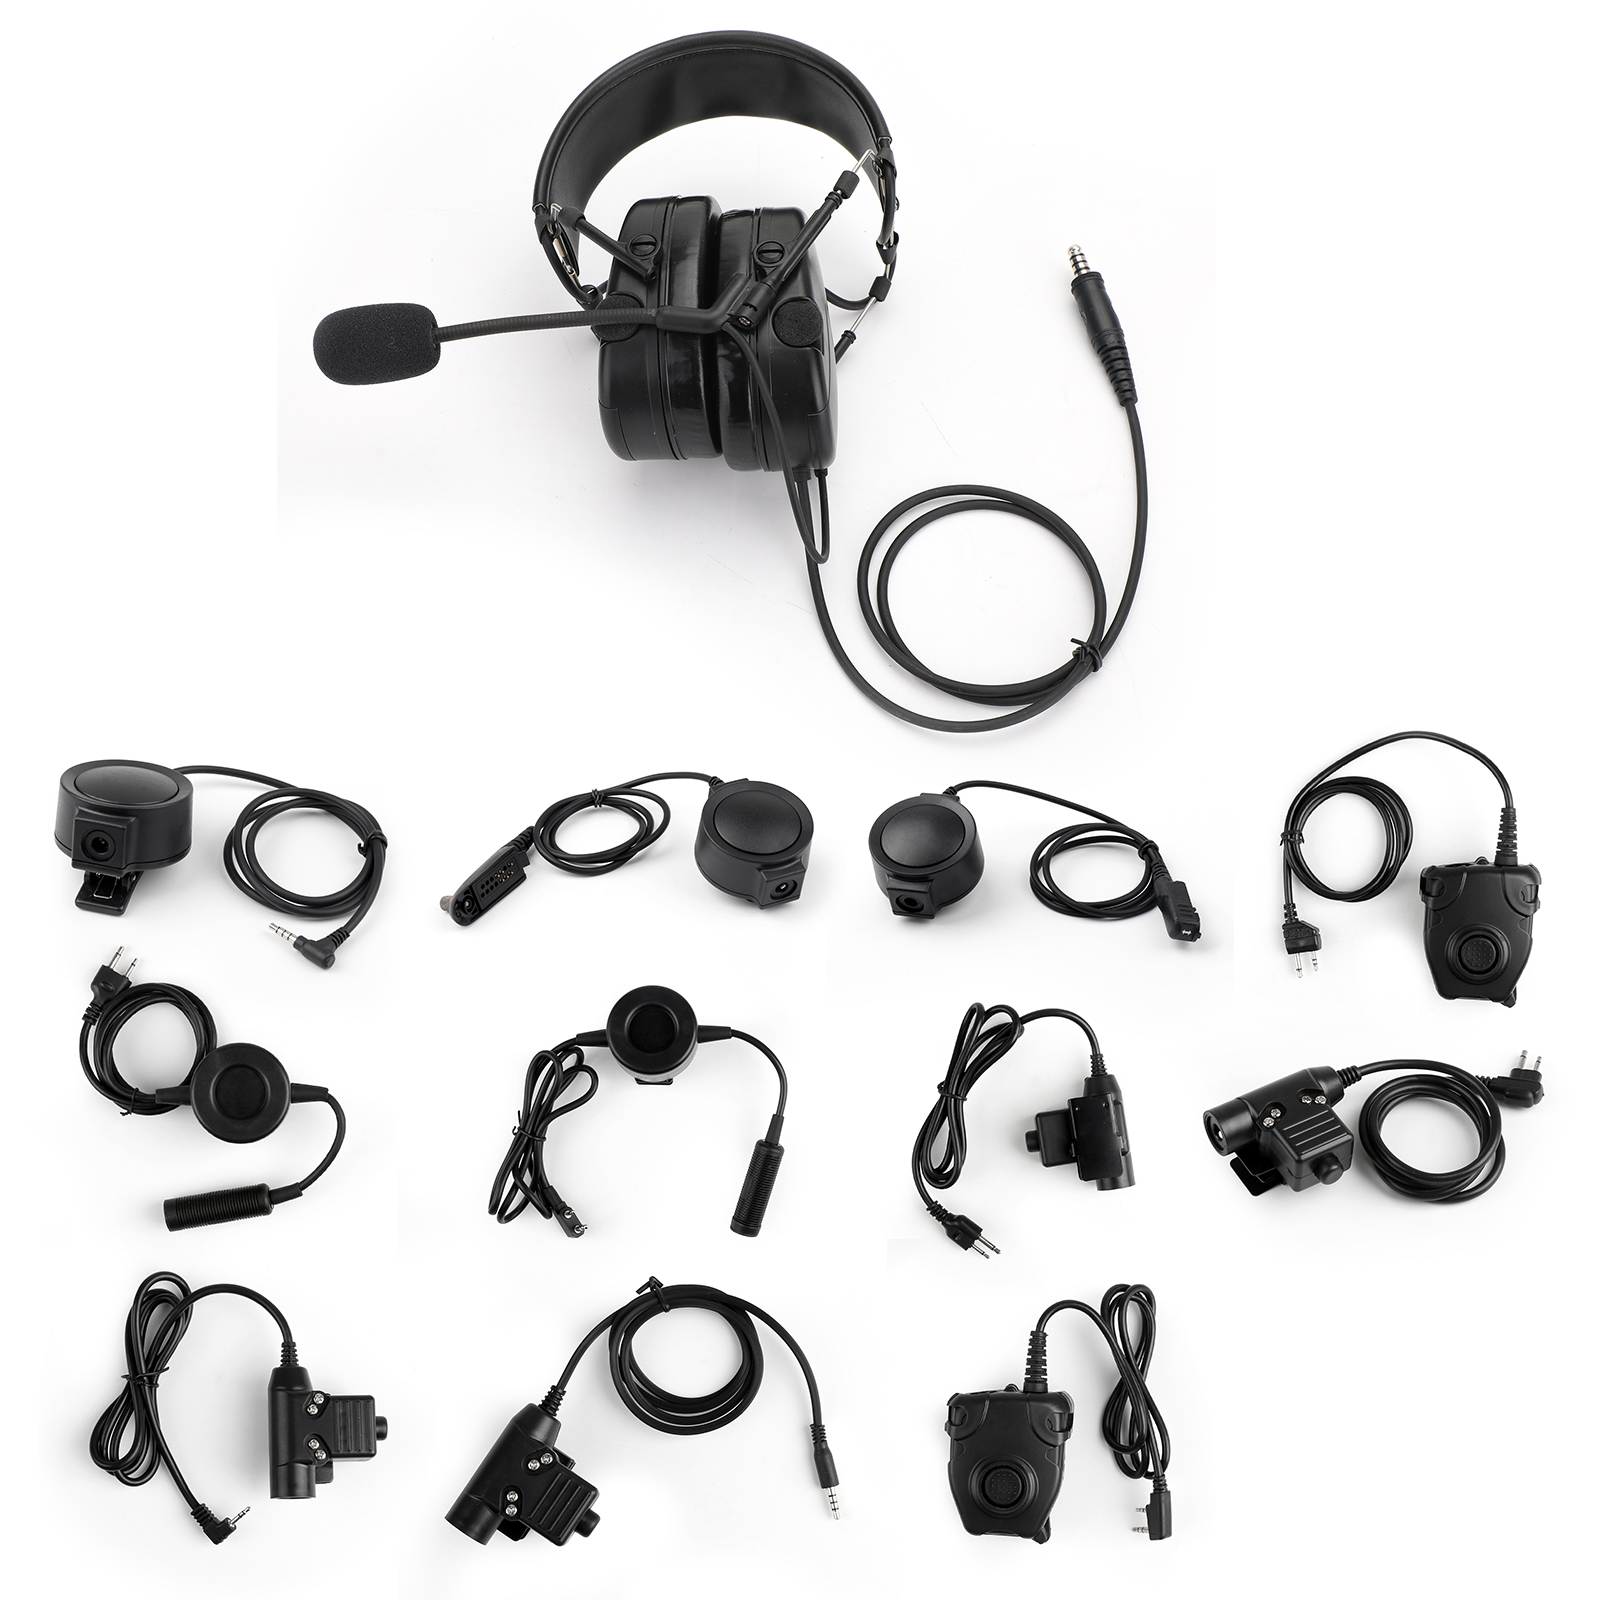 Millitary Style Noise Reduction Headphone PTT Mic for ICOM IC-F11 IC-F11S IC-F21